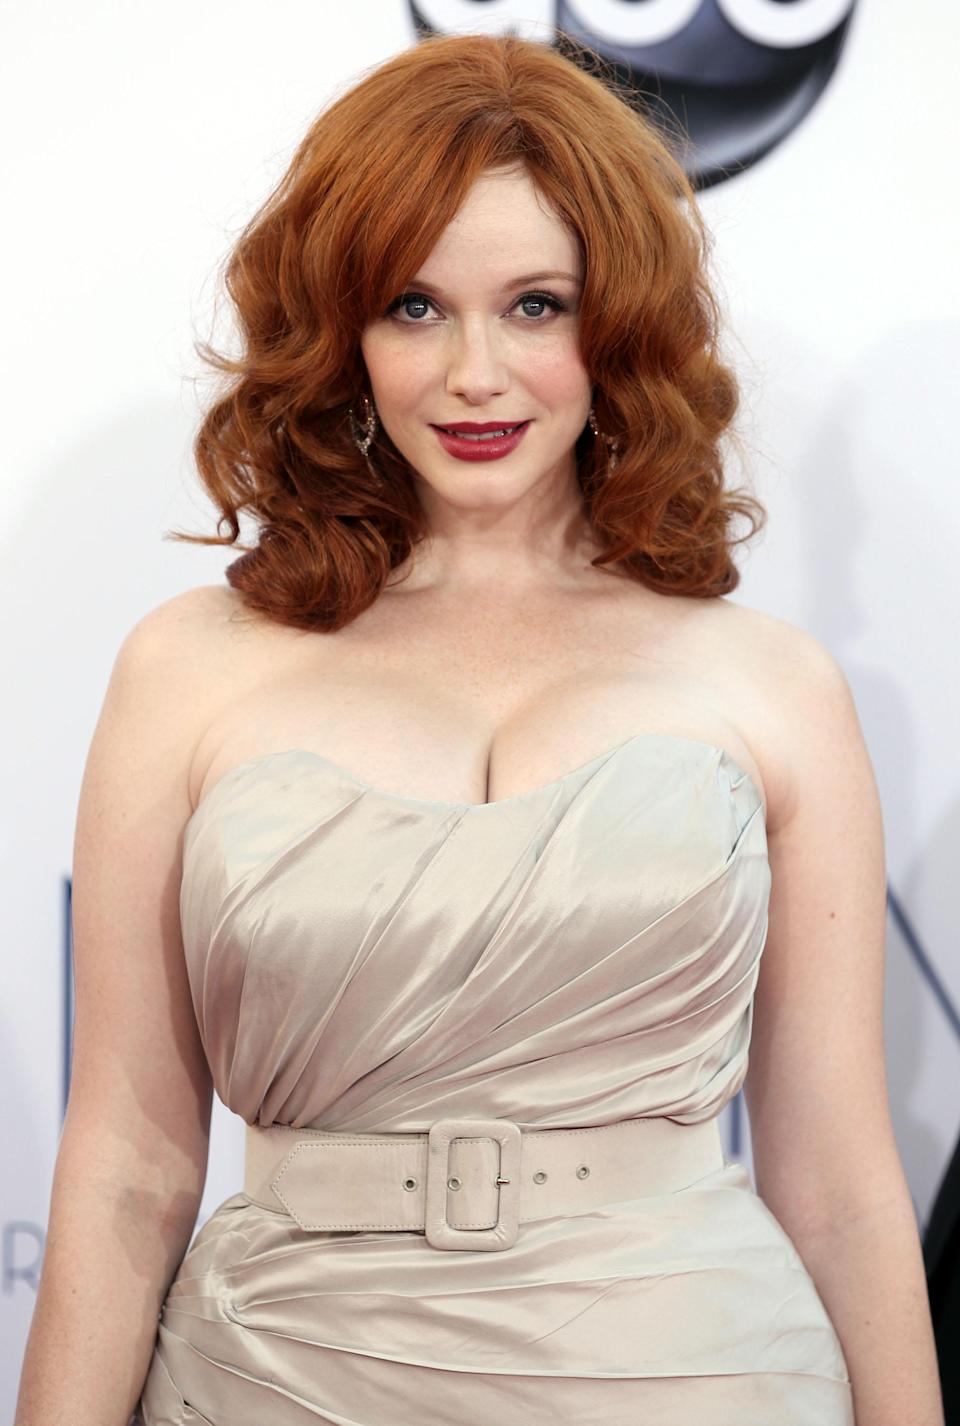 """Christina Hendricks from """"Mad Men"""" arrives at the 64th Primetime Emmy Awards at the Nokia Theatre on Sunday, Sept. 23, 2012, in Los Angeles. (Photo by Matt Sayles/Invision/AP)"""